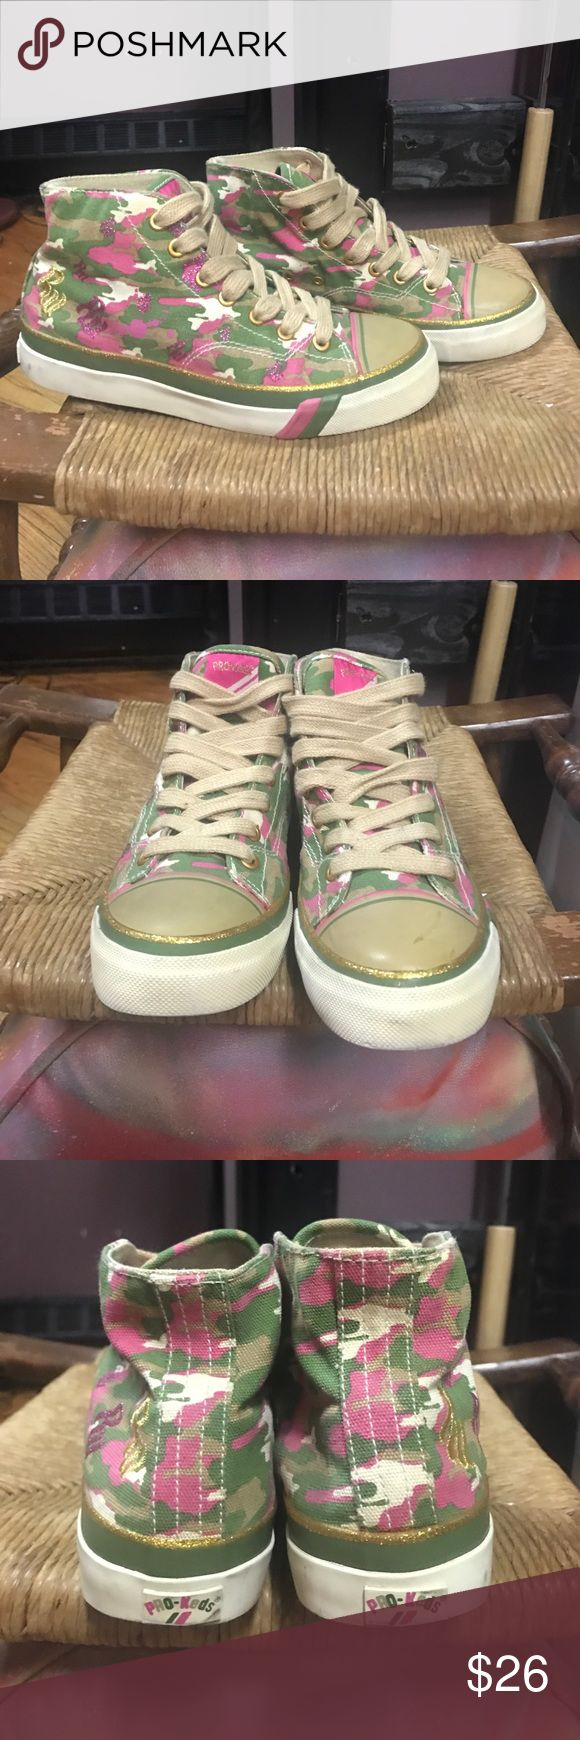 Roca Wear x Pro Keds camouflage sneakers Roca Wear x Pro Keds RARE, camouflage with pink & gold, platform, high top, sneakers. EUC. only flaw is a stain on the left toe (I'm sure this could come off with shoe cleaner) hard to find! Keds Shoes Sneakers